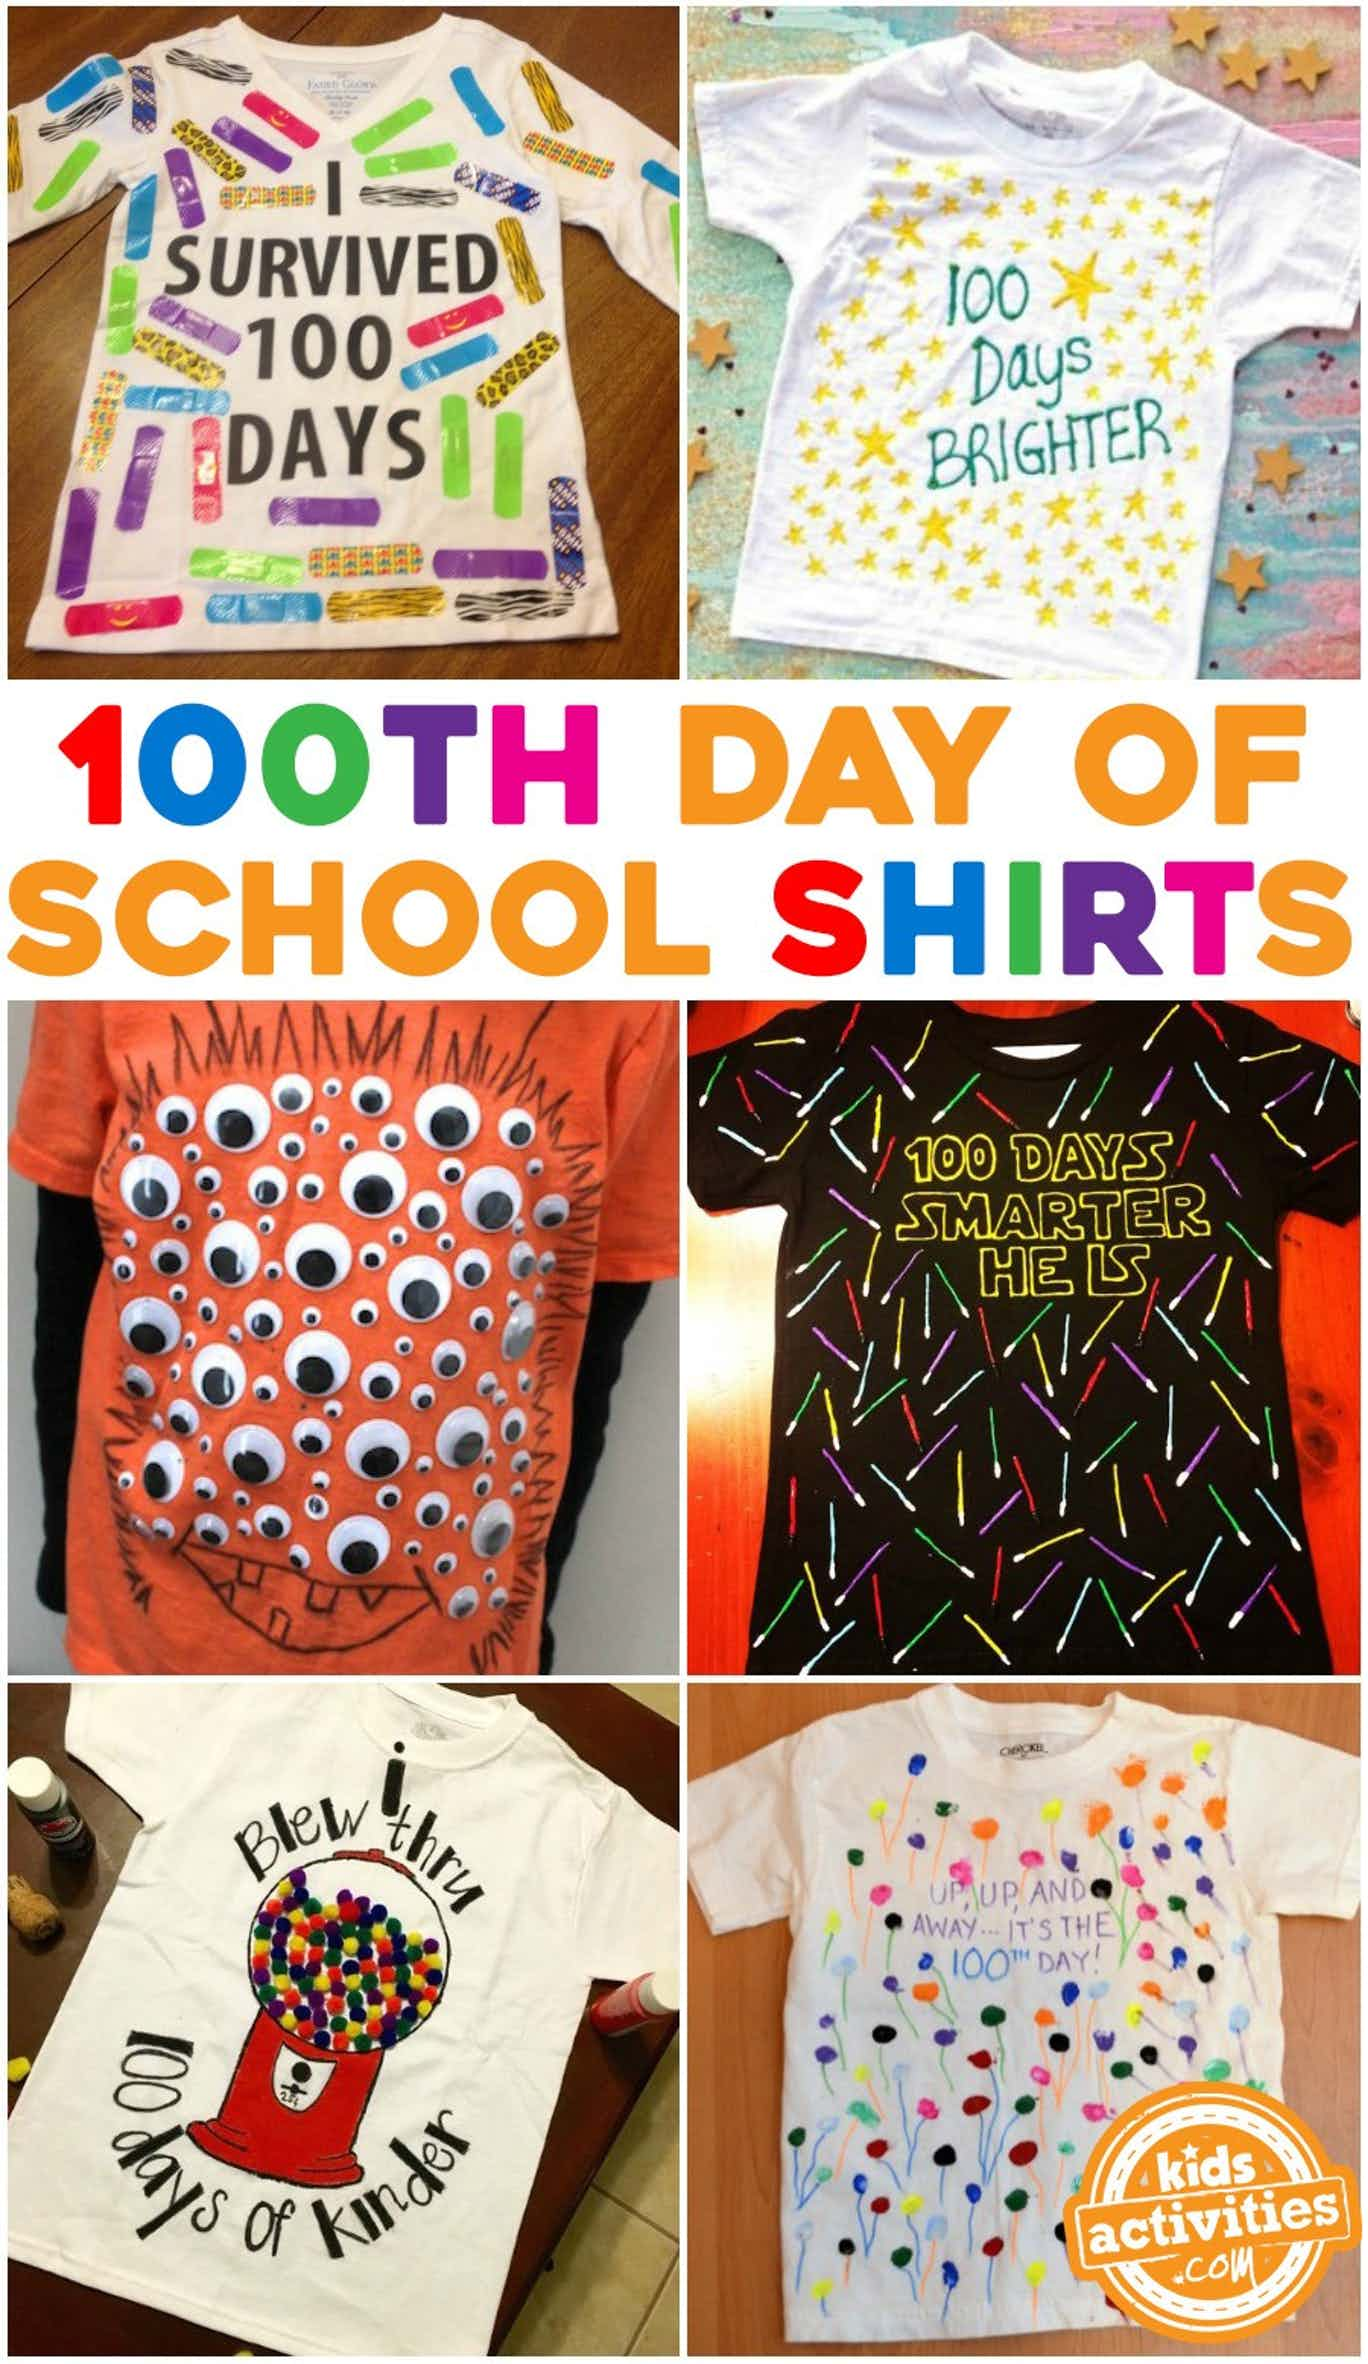 hight resolution of Super Easy 100th Day of School Shirt Ideas 2021 (yes 2021!)  Kids  Activities Blog